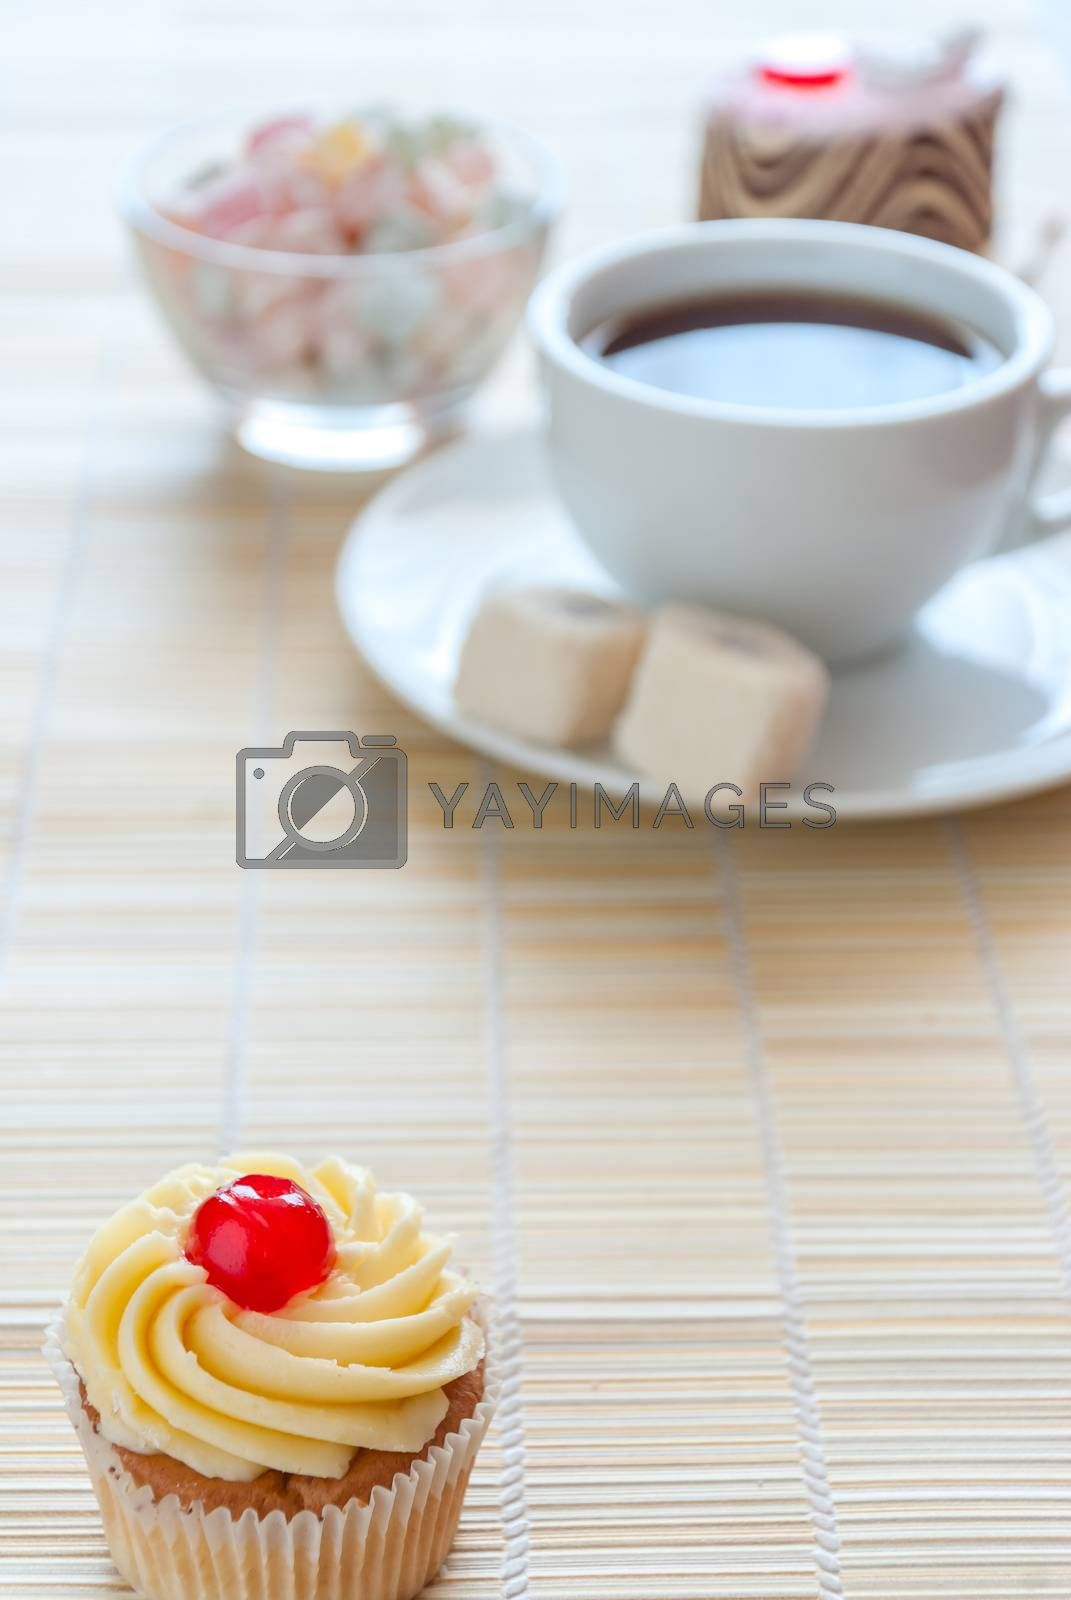 Tea, fresh cherry muffin, colorful delight and various cake, sweet dessert, with place for your text, soft focus